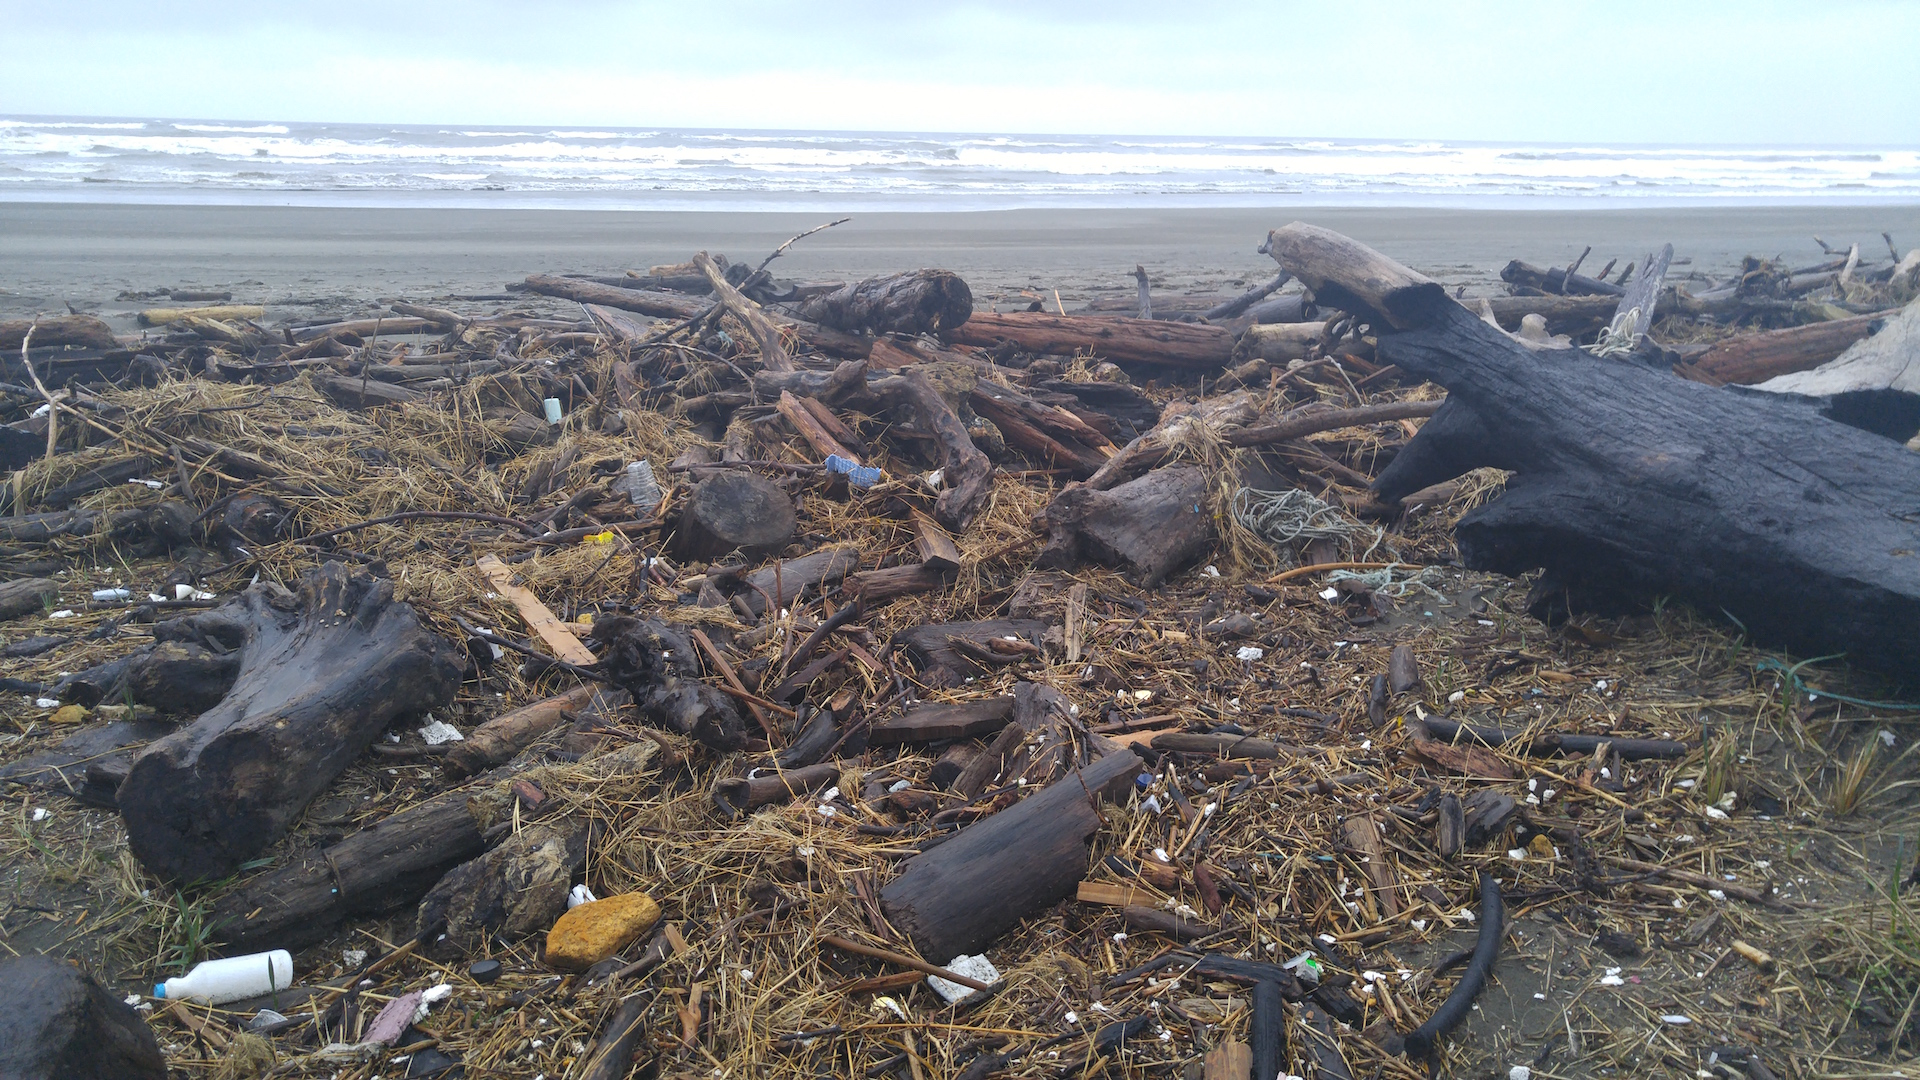 Plastics Dominate Debris on State's Coastal Beaches